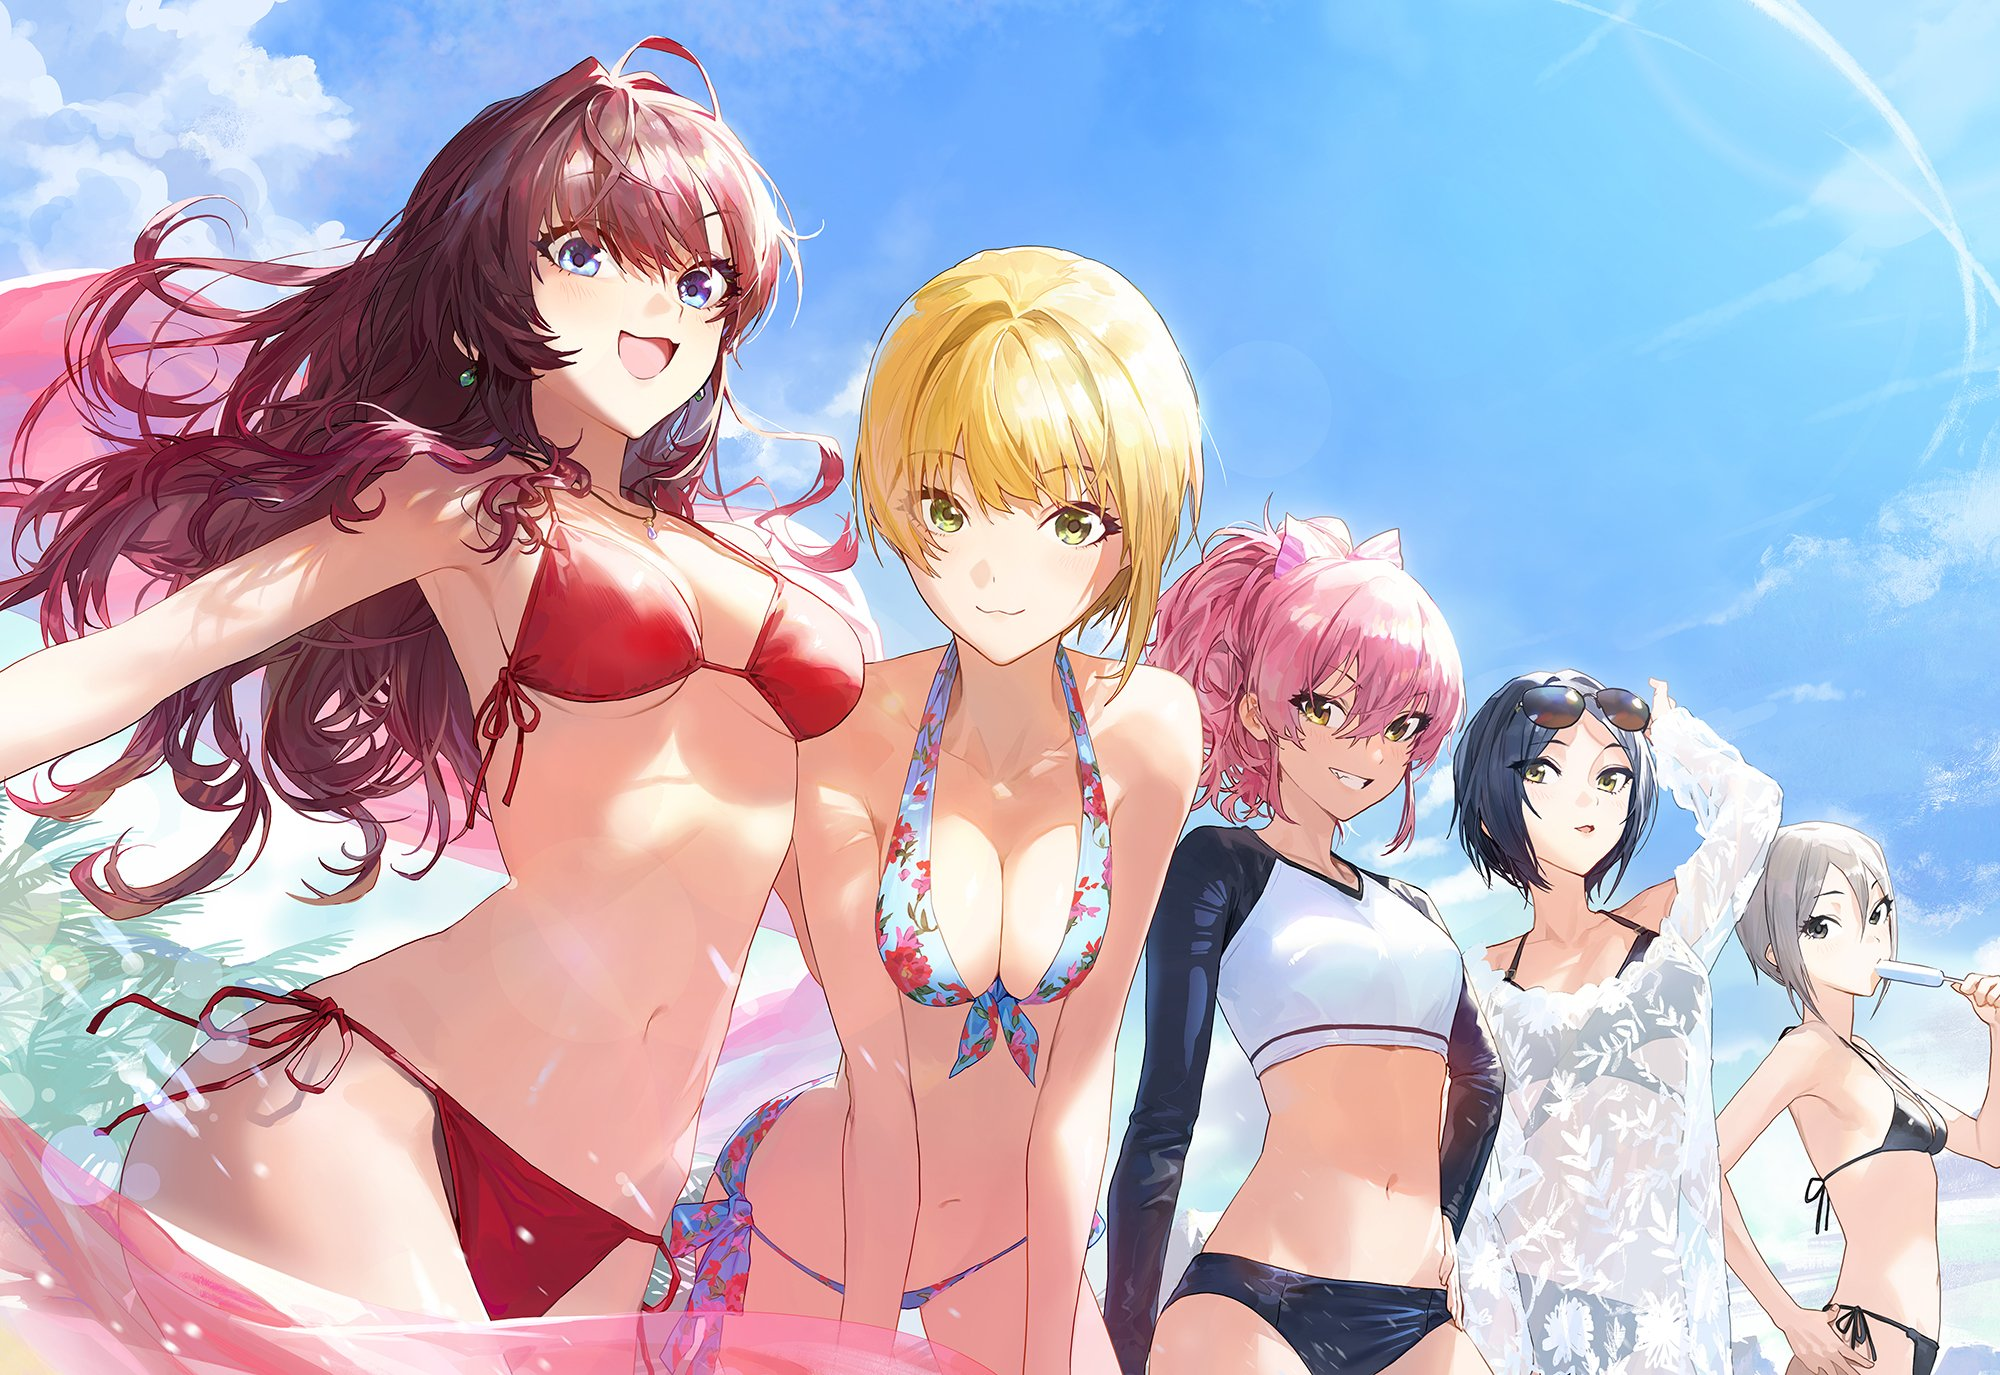 Anime 2000x1375 anime anime girls boobs bikini blonde redhead pink hair THE iDOLM@STER: Cinderella Girls Shiki Ichinose